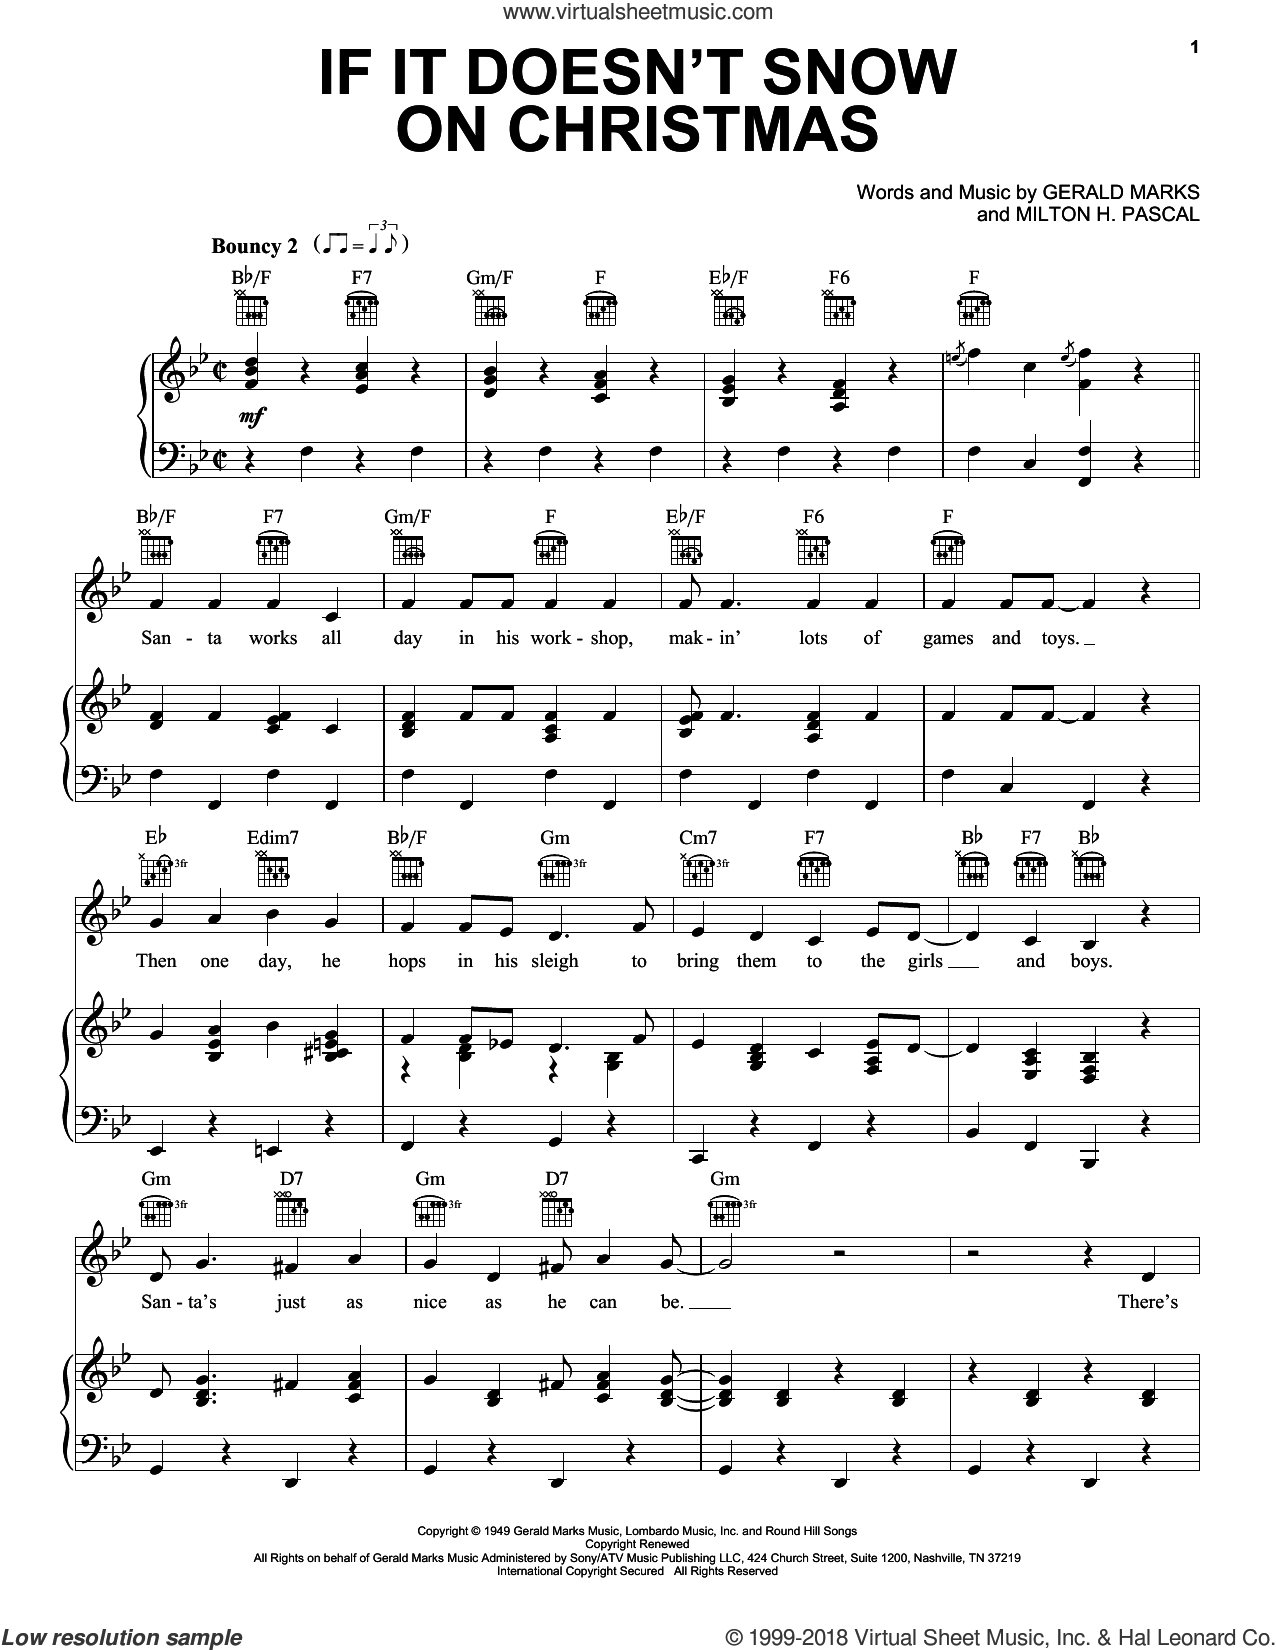 If It Doesn't Snow On Christmas sheet music for voice, piano or guitar by Gerald Marks and Gene Autry. Score Image Preview.